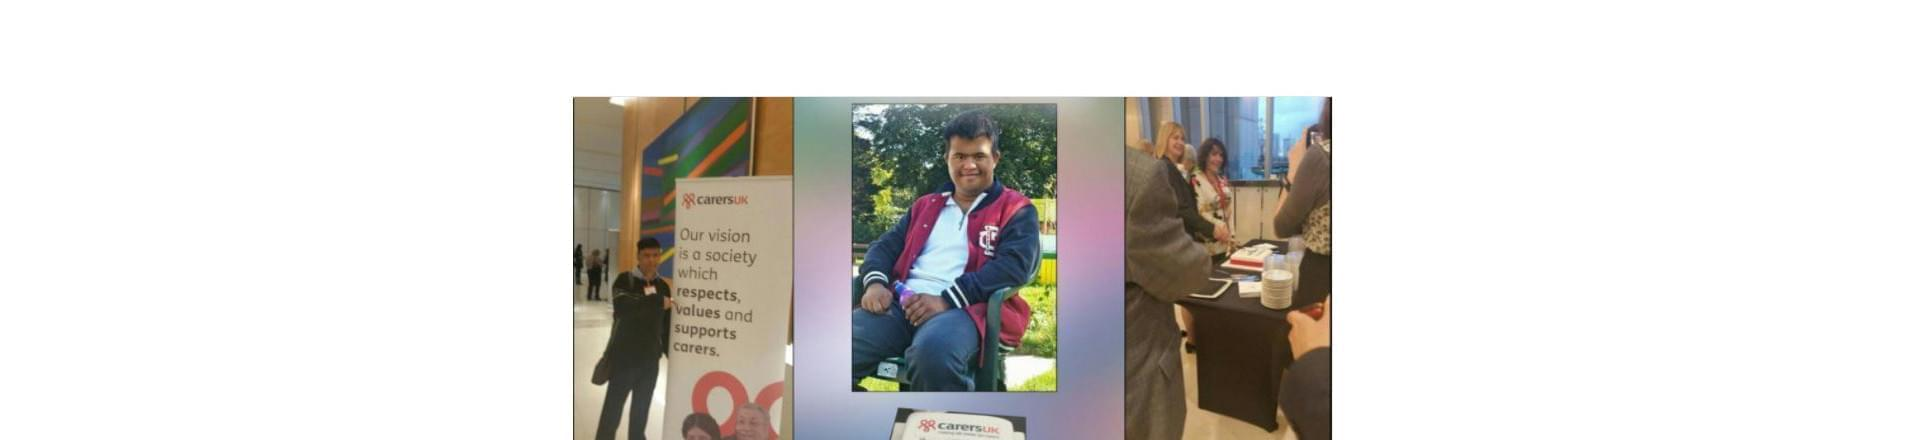 Three images, the far left image is a man standing next to a Carers UK sign, the middle image is a man sitting on a chair and the far right image is a group of people speaking to each other in a room.